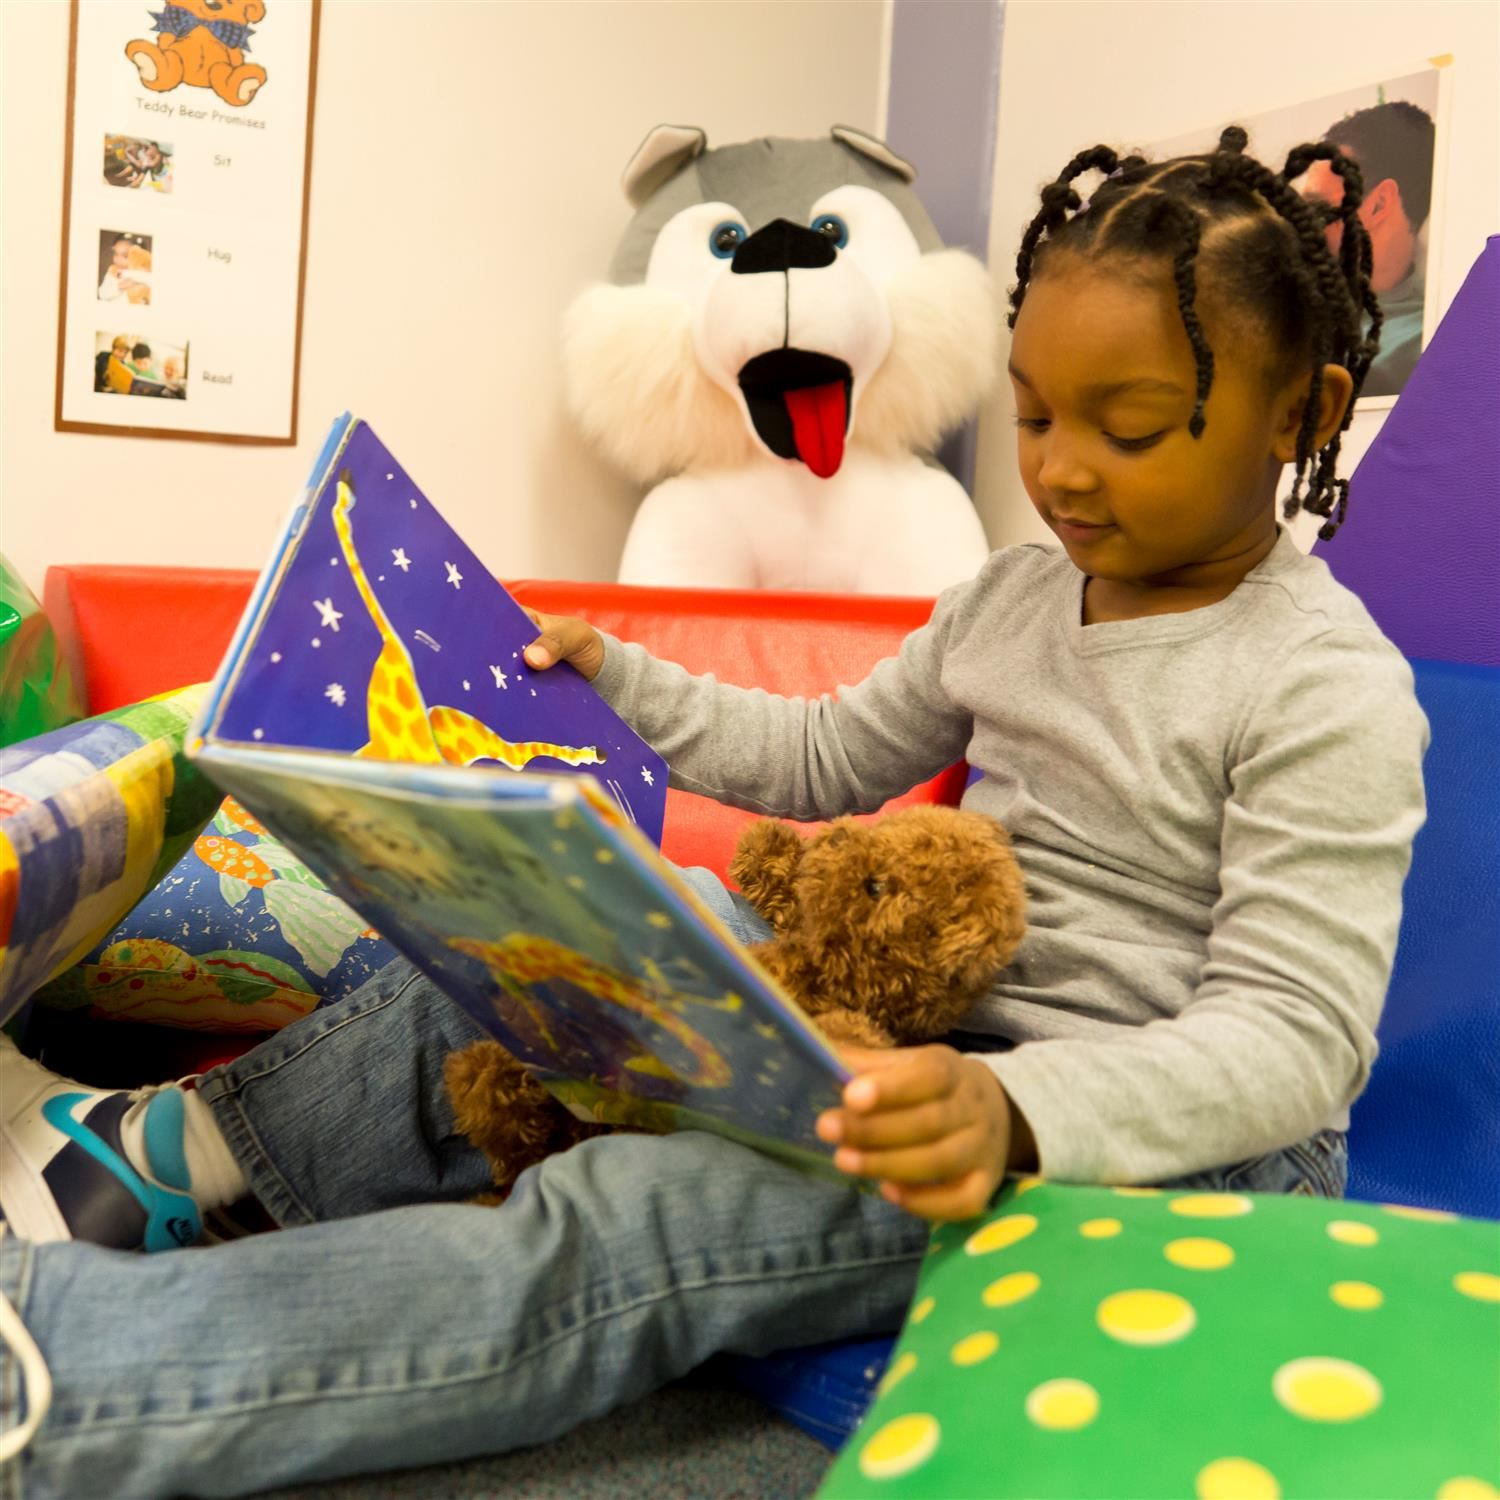 A girl in pre-kindergarten sitting on the floor reading and holding a stuffed animal.